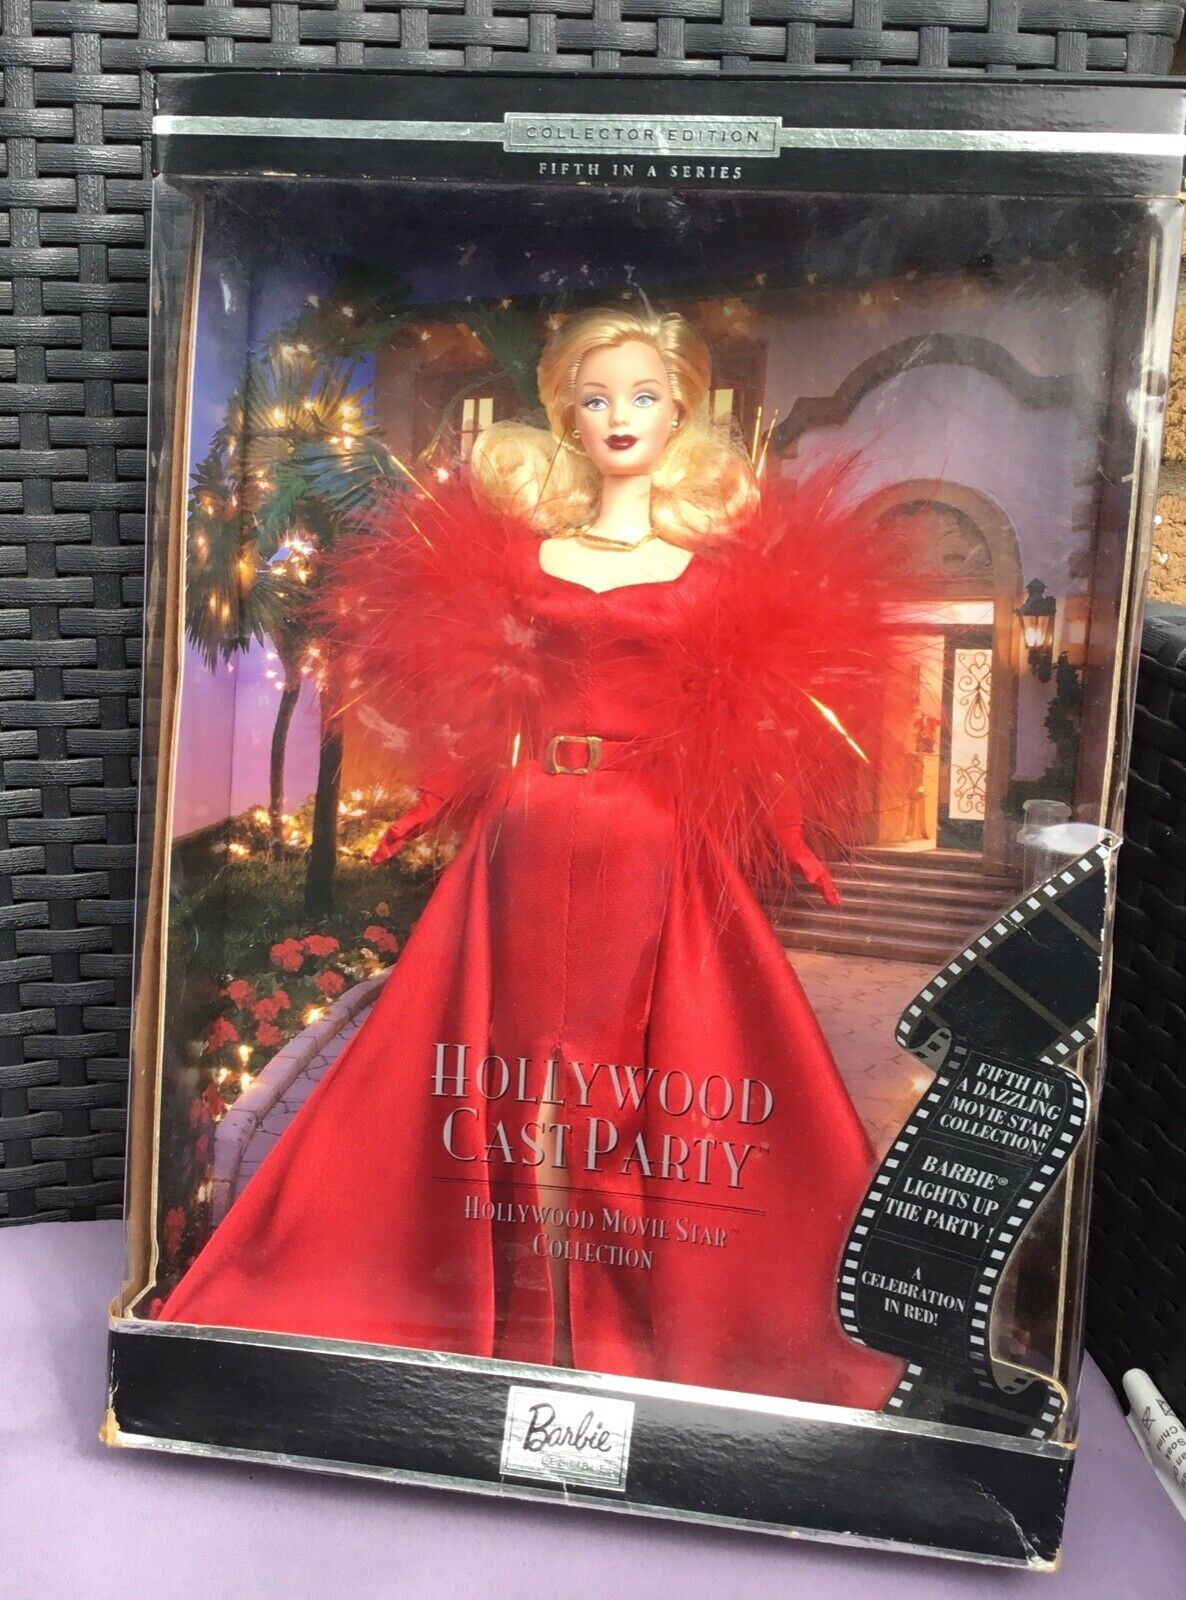 2001 COLLETTORE EDT Hollywood star del cinema COLLEZIONE CAST HOLLYWOOD PARTY BARBIE